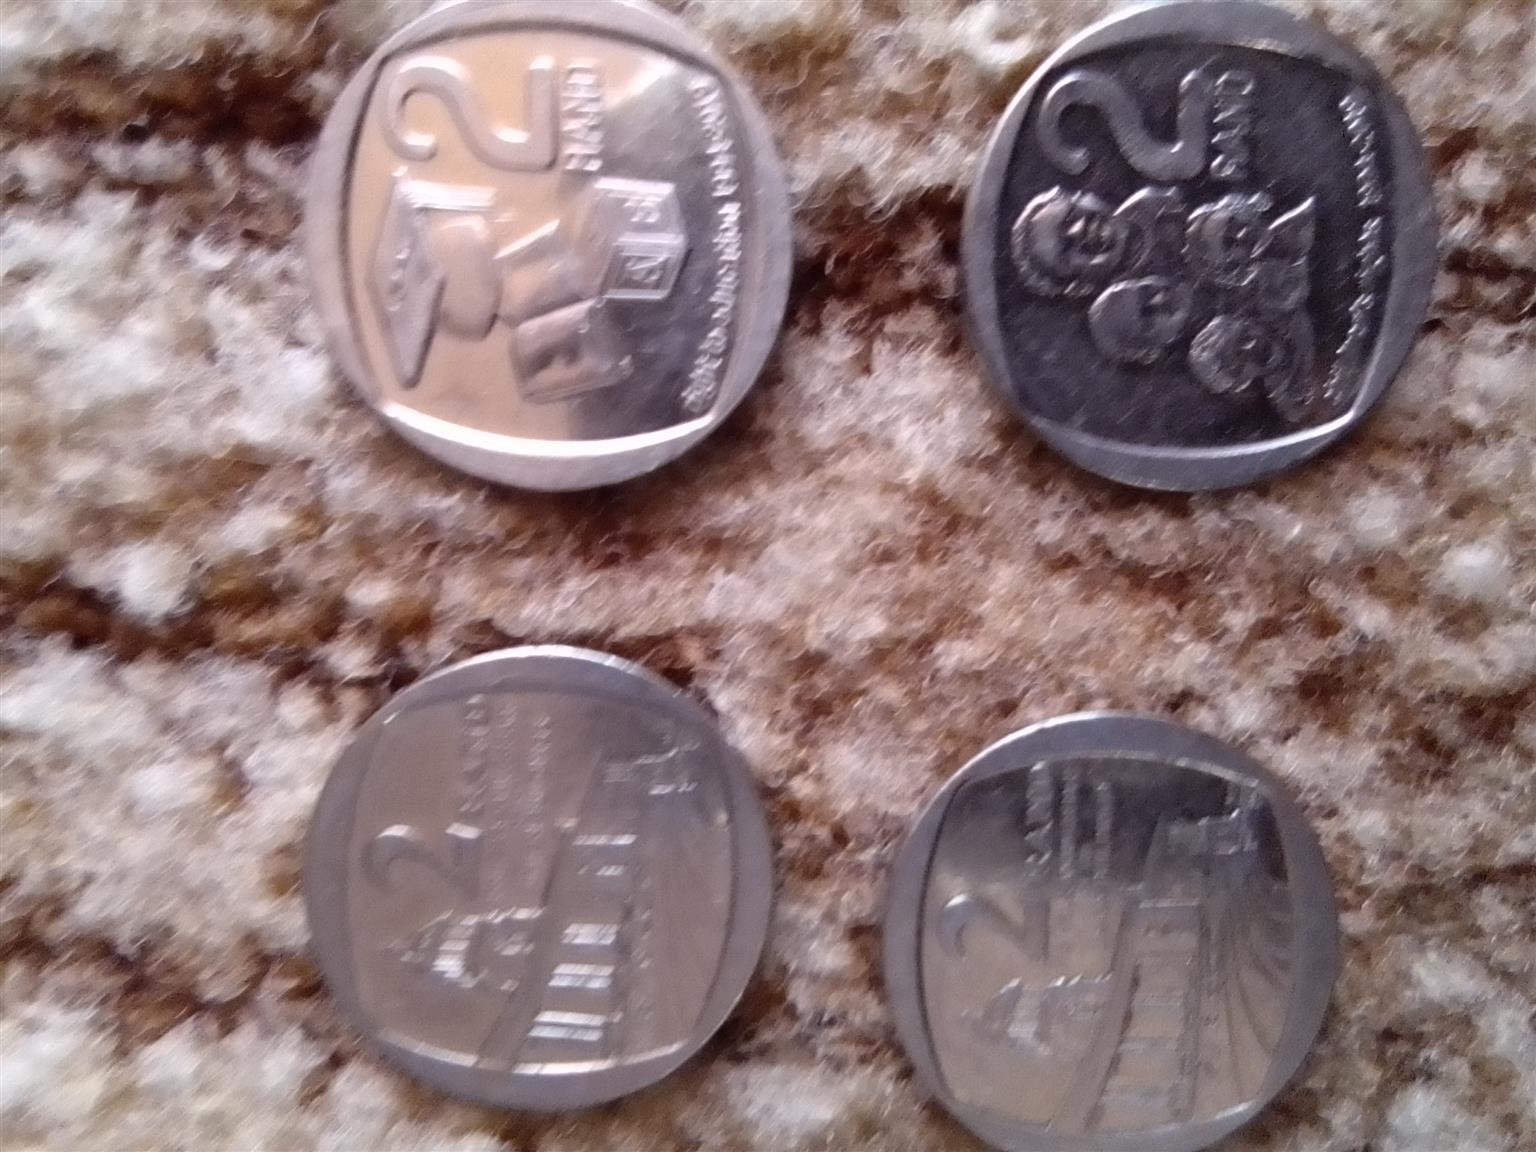 6 R5 coins and 12 R2 coins for sale,0676481796